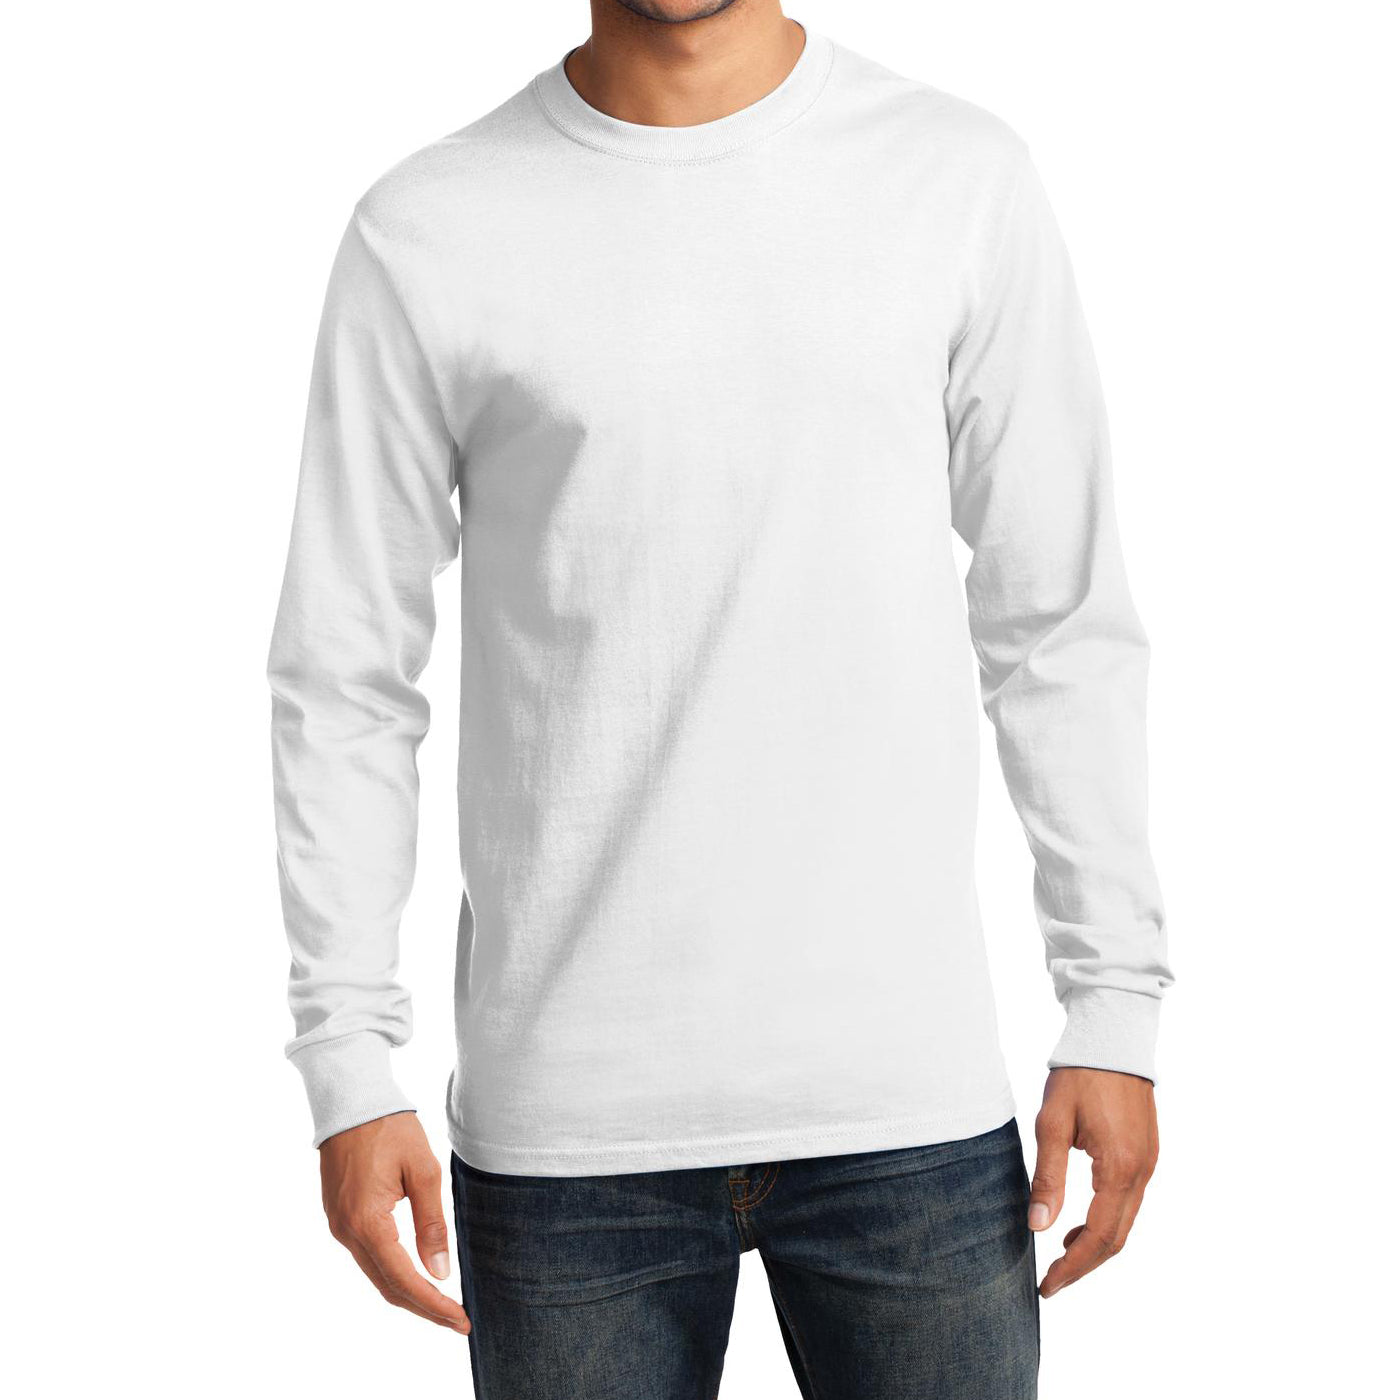 Men's Long Sleeve Essential Tee - White - Front